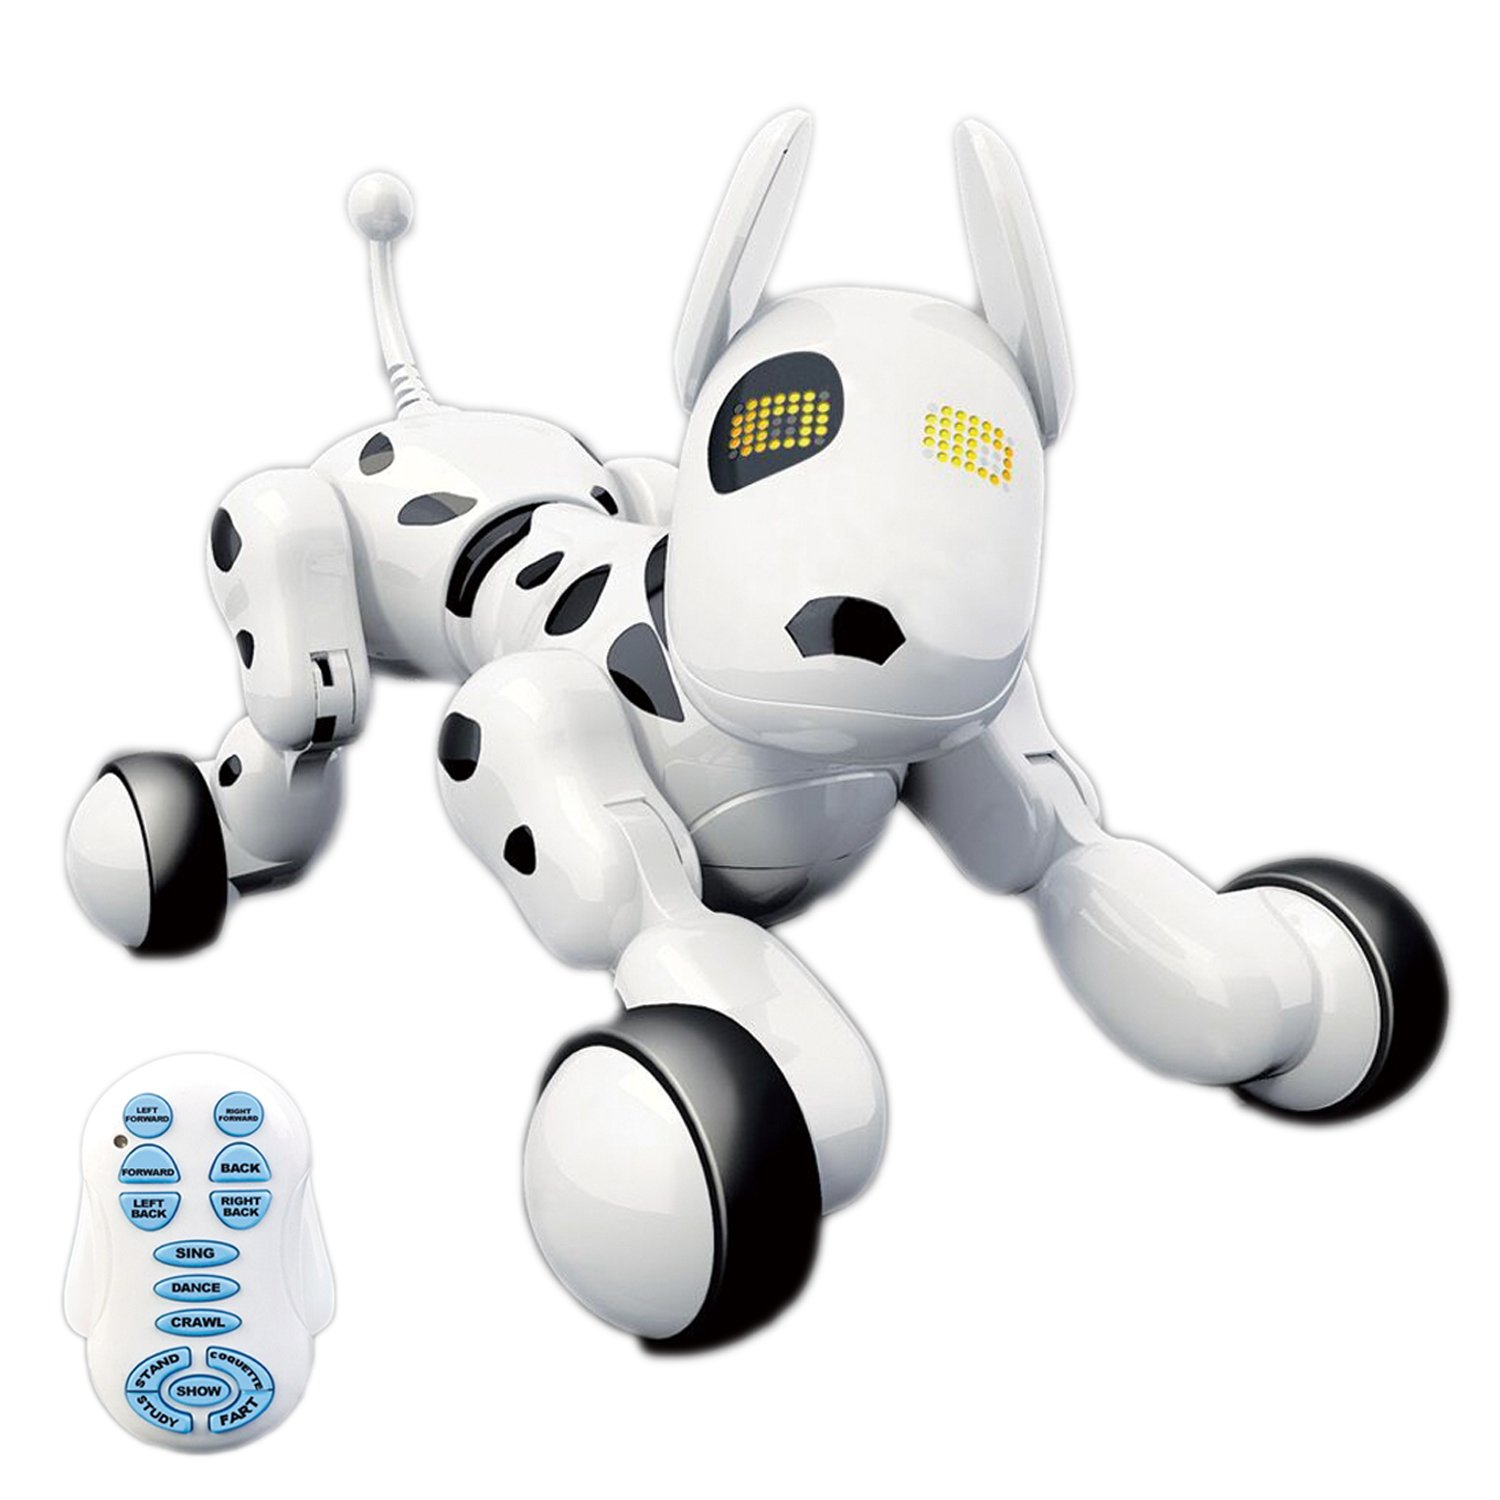 Interactive Robot Doggy